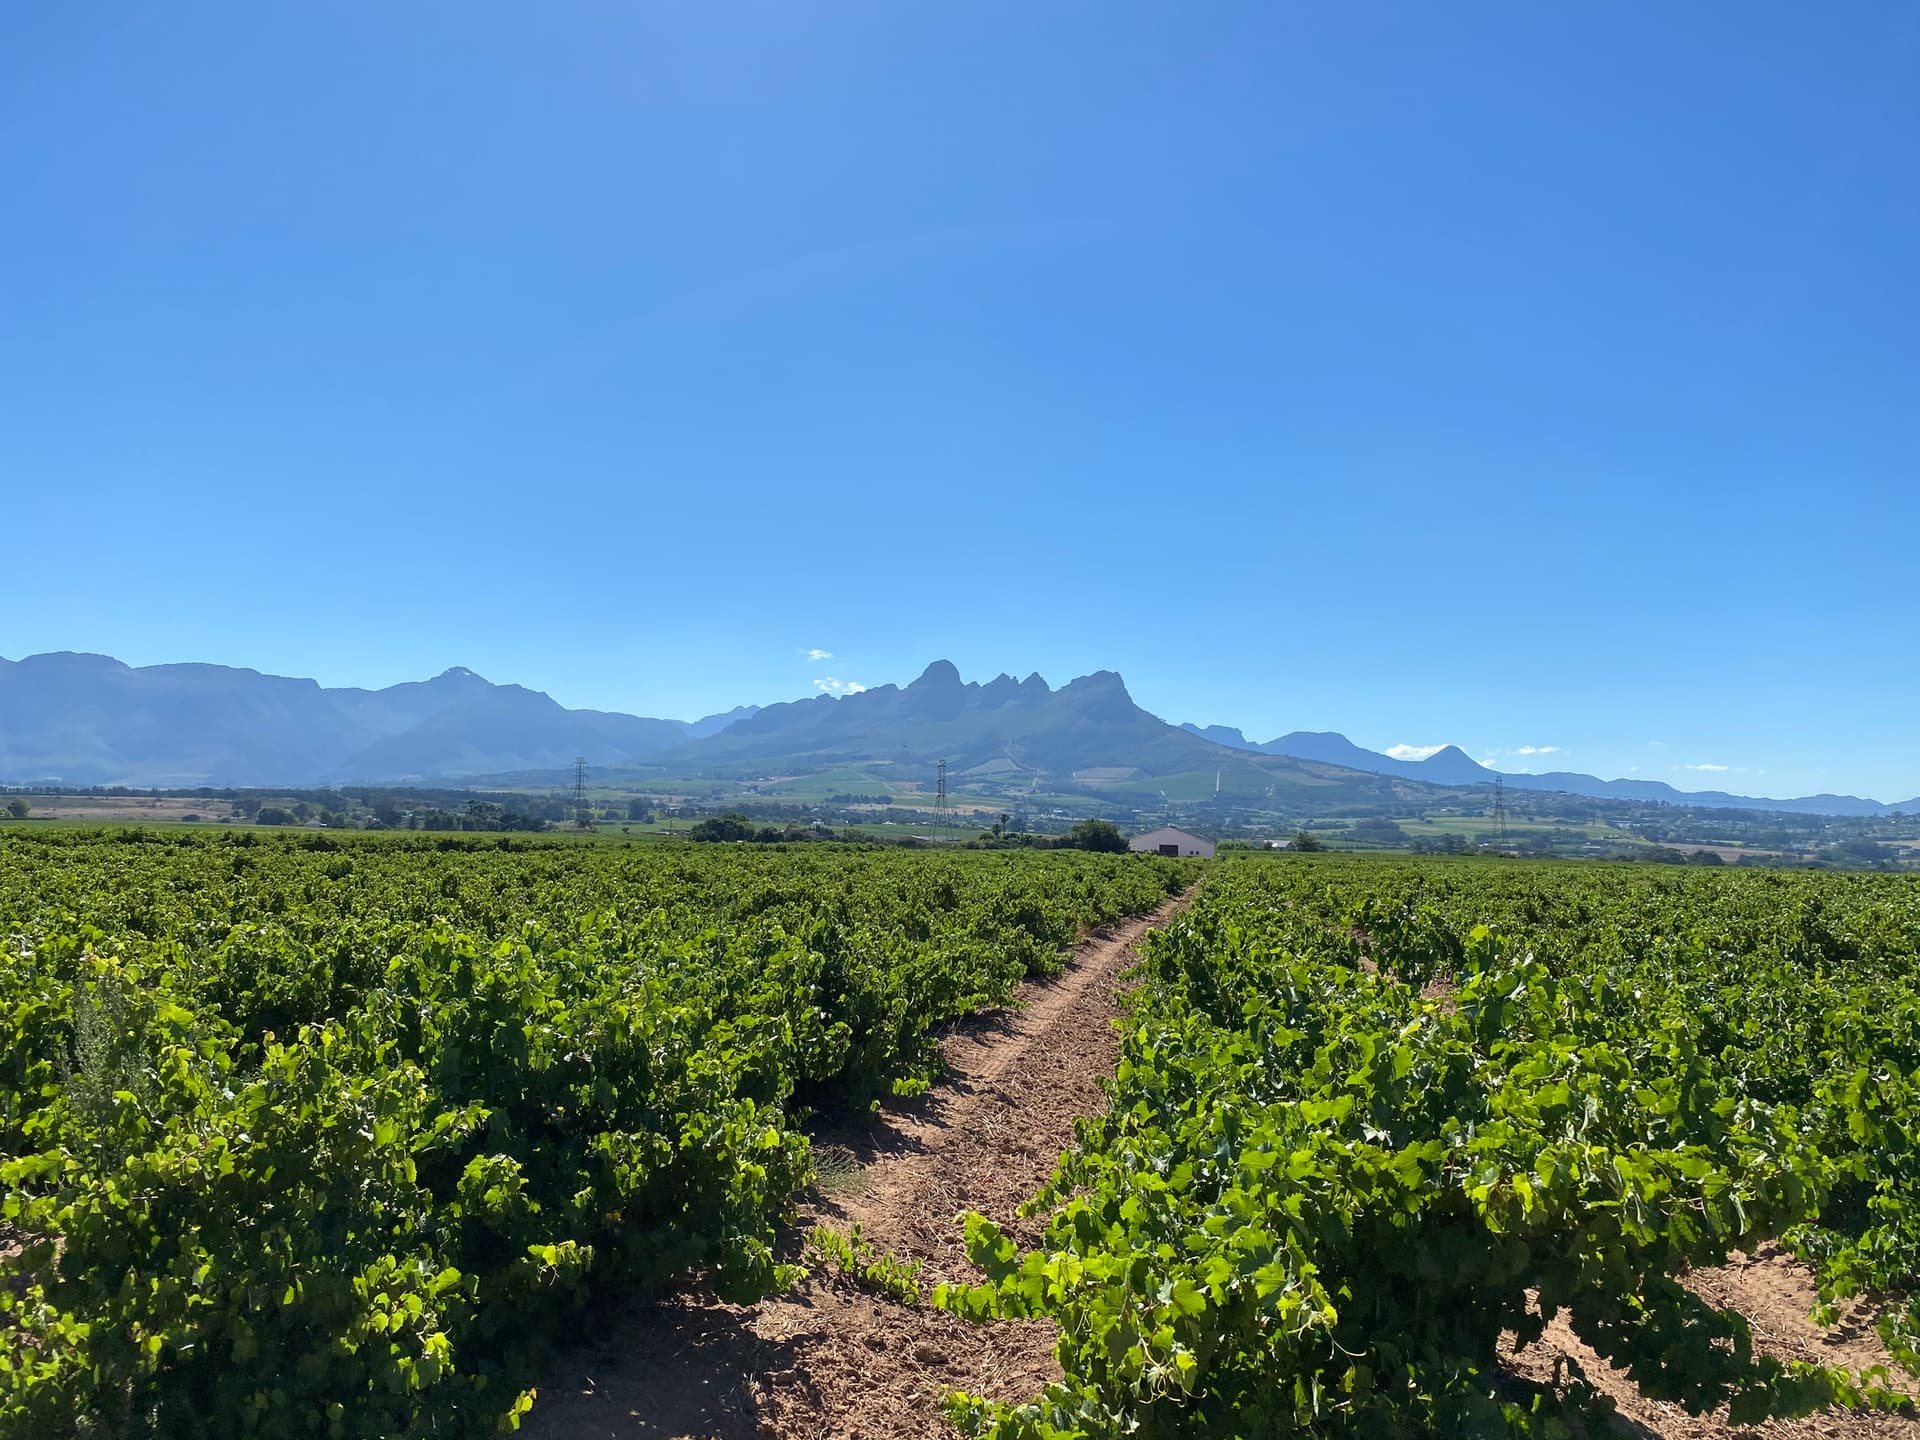 Vineyards and mountains in South Africa